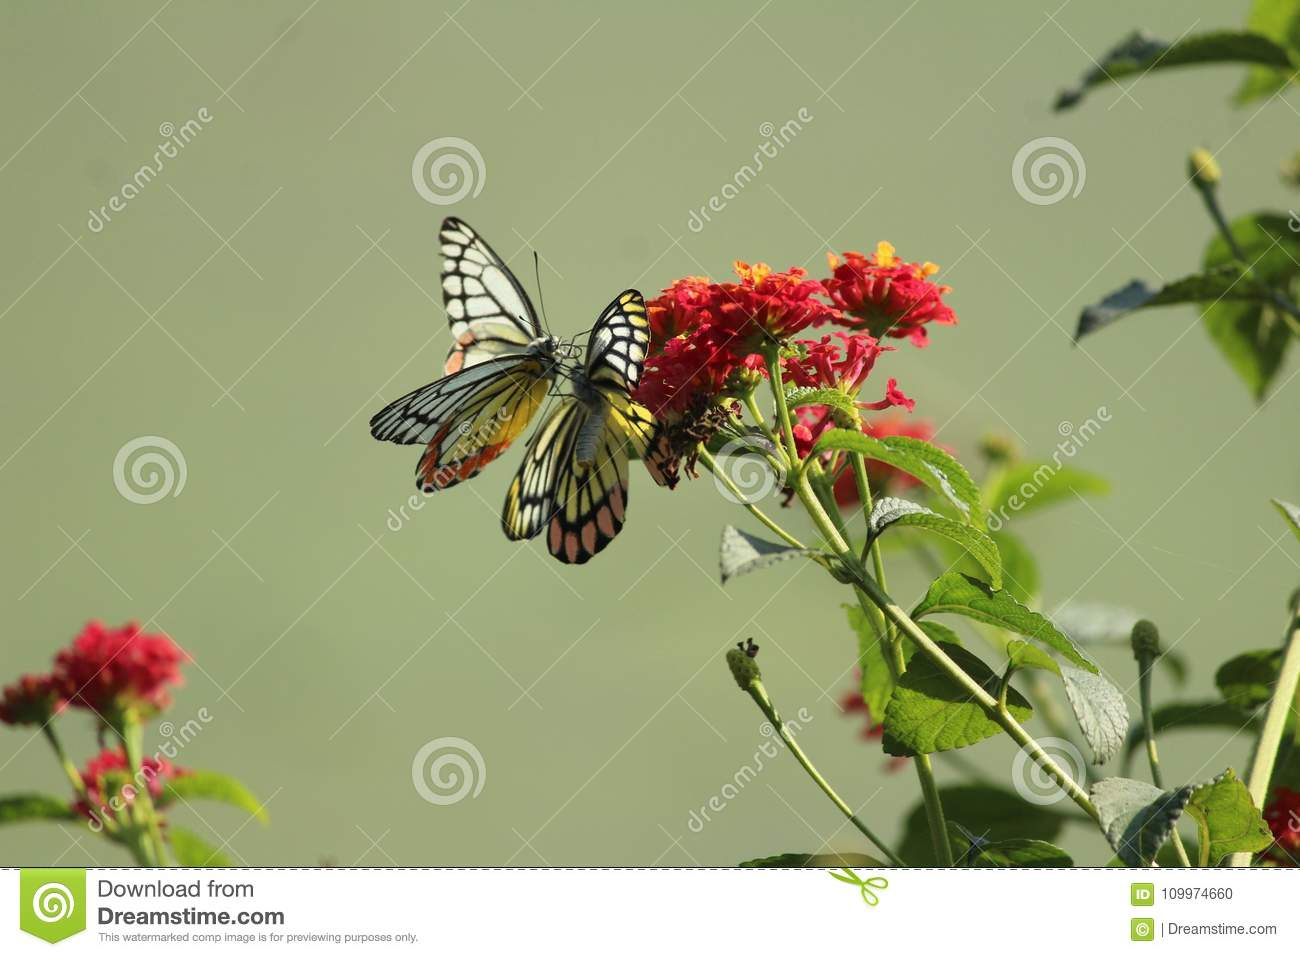 Closeup Butterfly On Flower Wallpaper Stock Photo Image Of